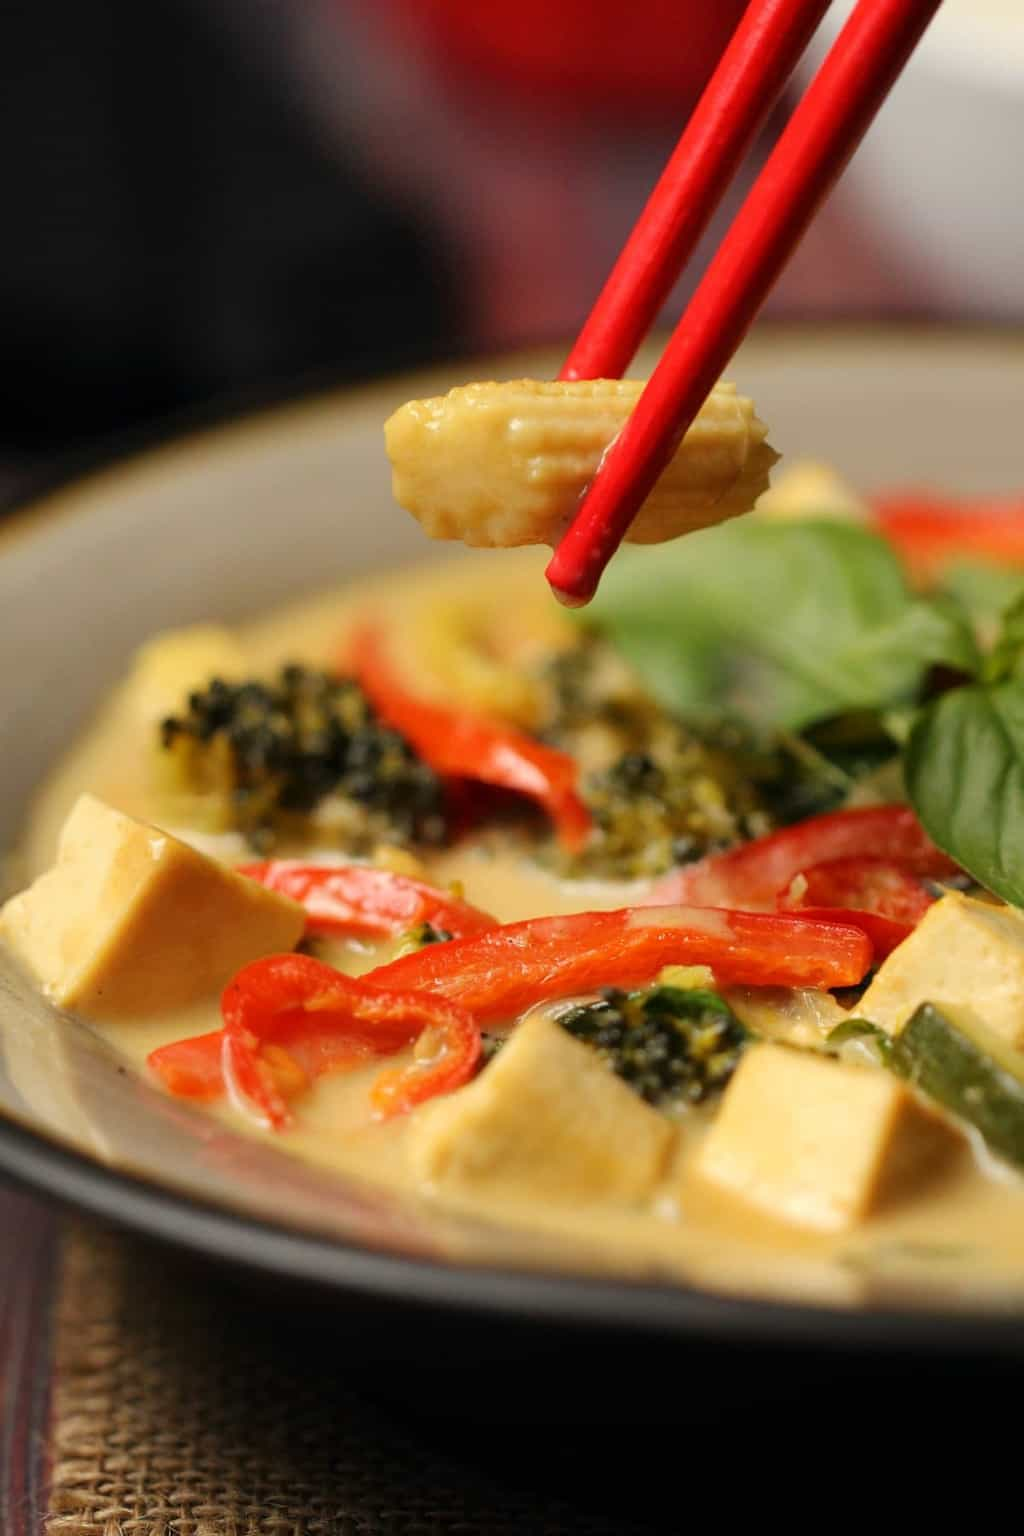 Vegan green curry in a stone bowl with red chopsticks.